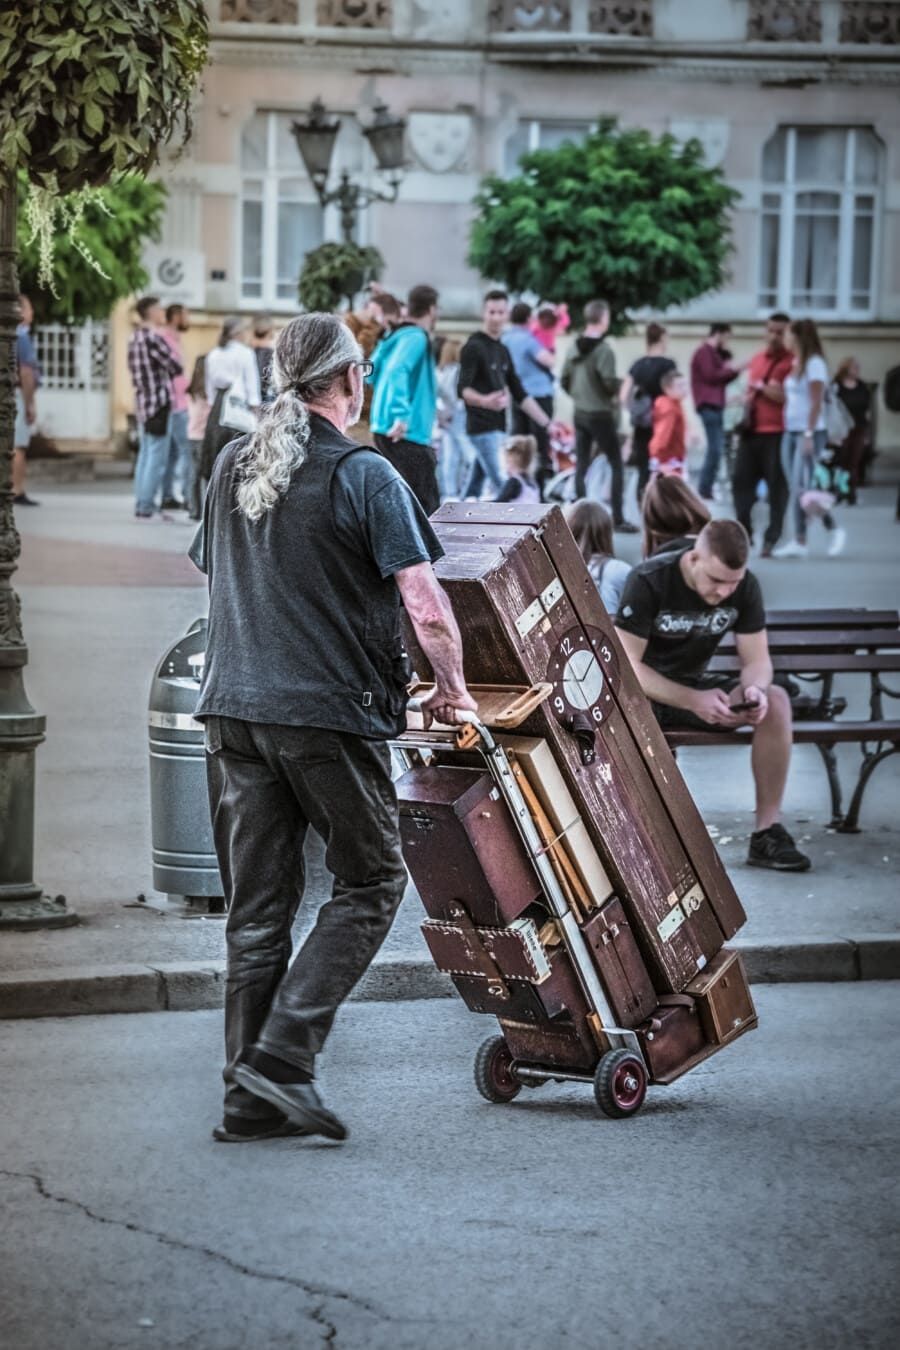 man, baggage, carrier, people, street, city, group, urban, many, tourist